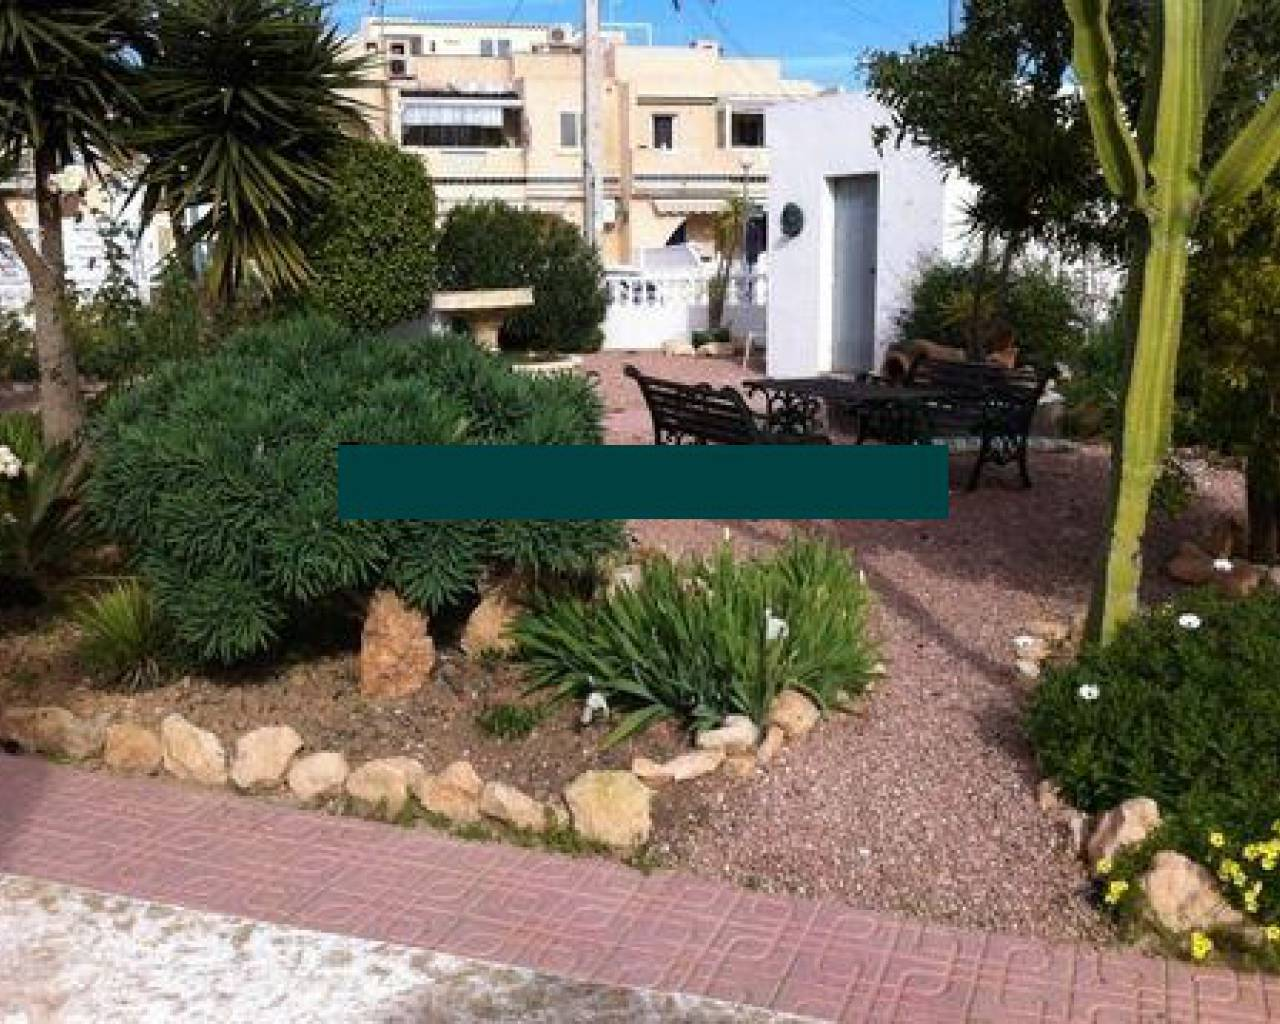 Segunda Mano - Semi Detached Villa - Orihuela Costa - Playa Flamenca